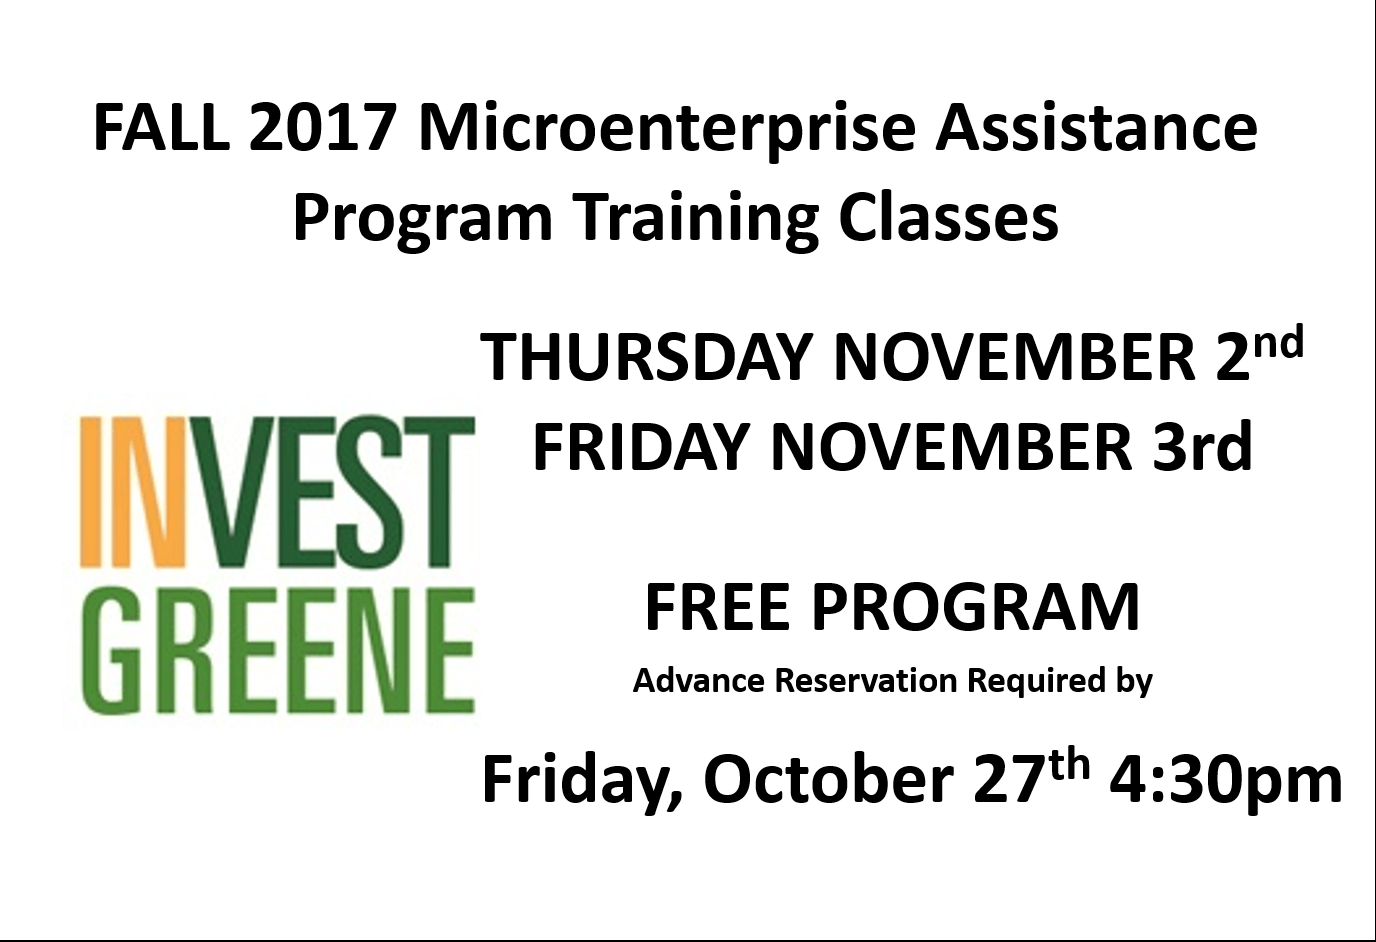 Fall 2017 Microenterprise Assistance Program Training Classes November 2nd & 3rd